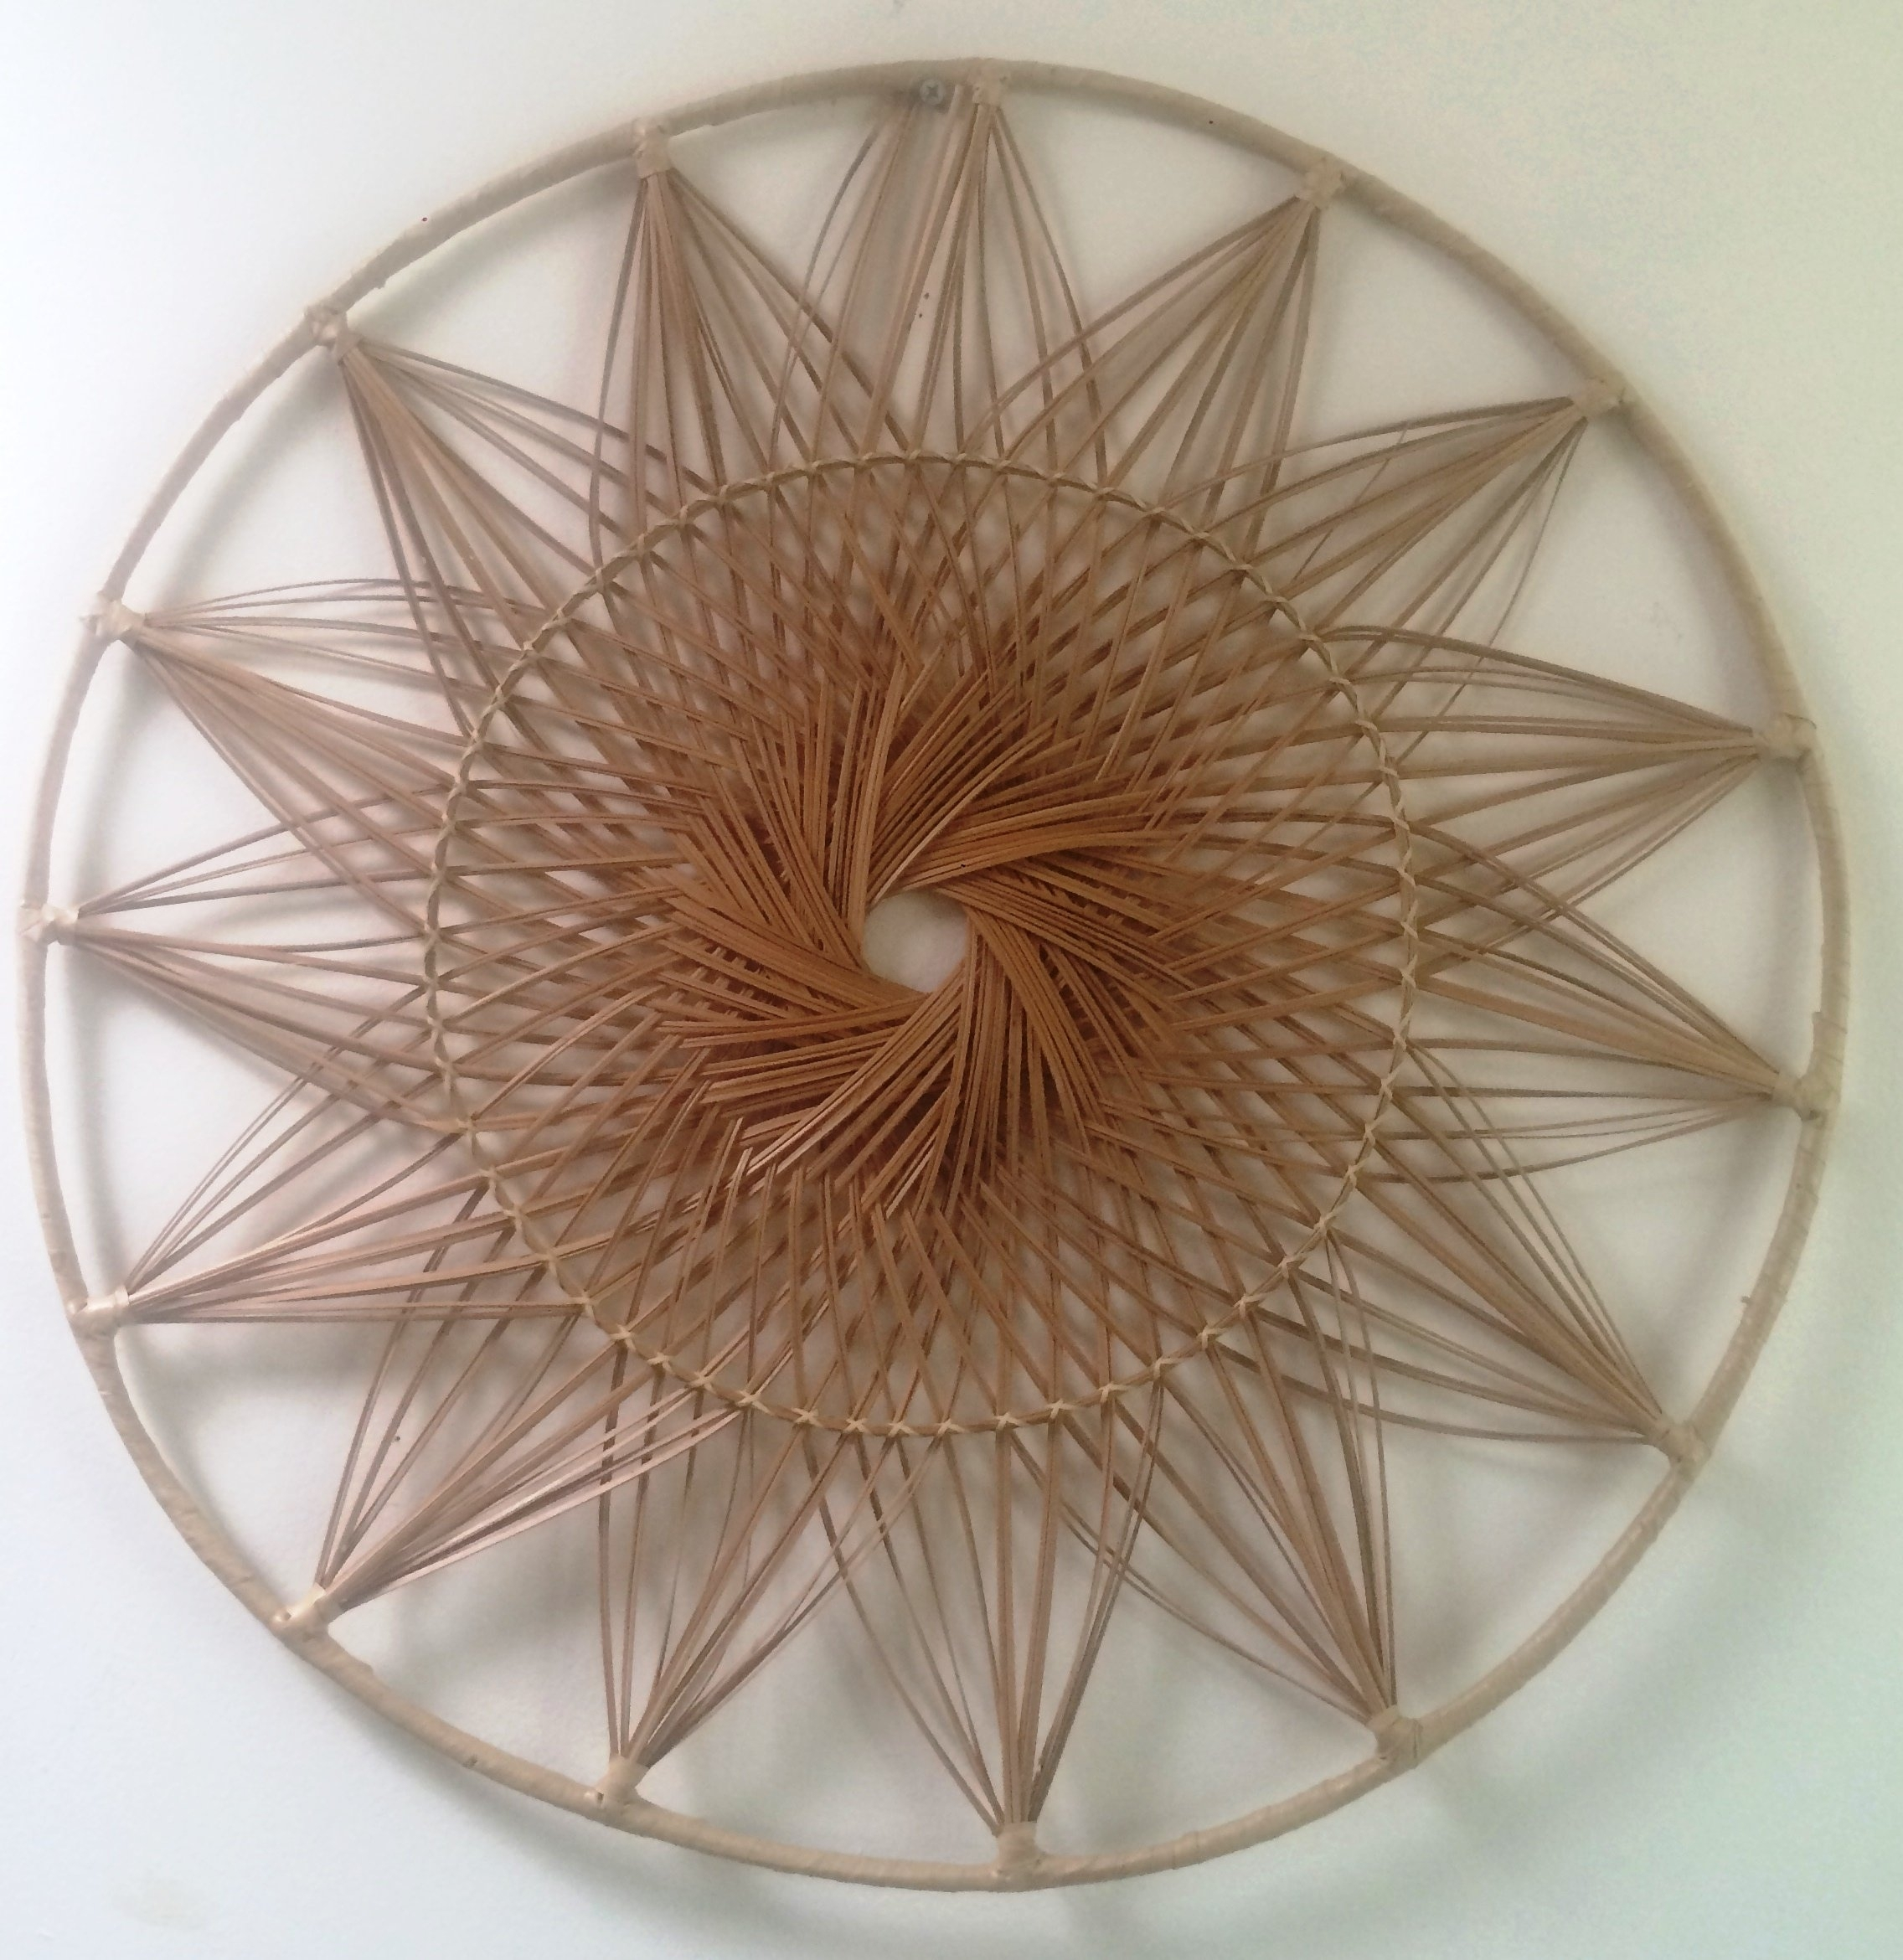 Ingenious Design Ideas Woven Basket Wall Art Vintage Hanging Large Throughout Latest Woven Basket Wall Art (View 2 of 20)